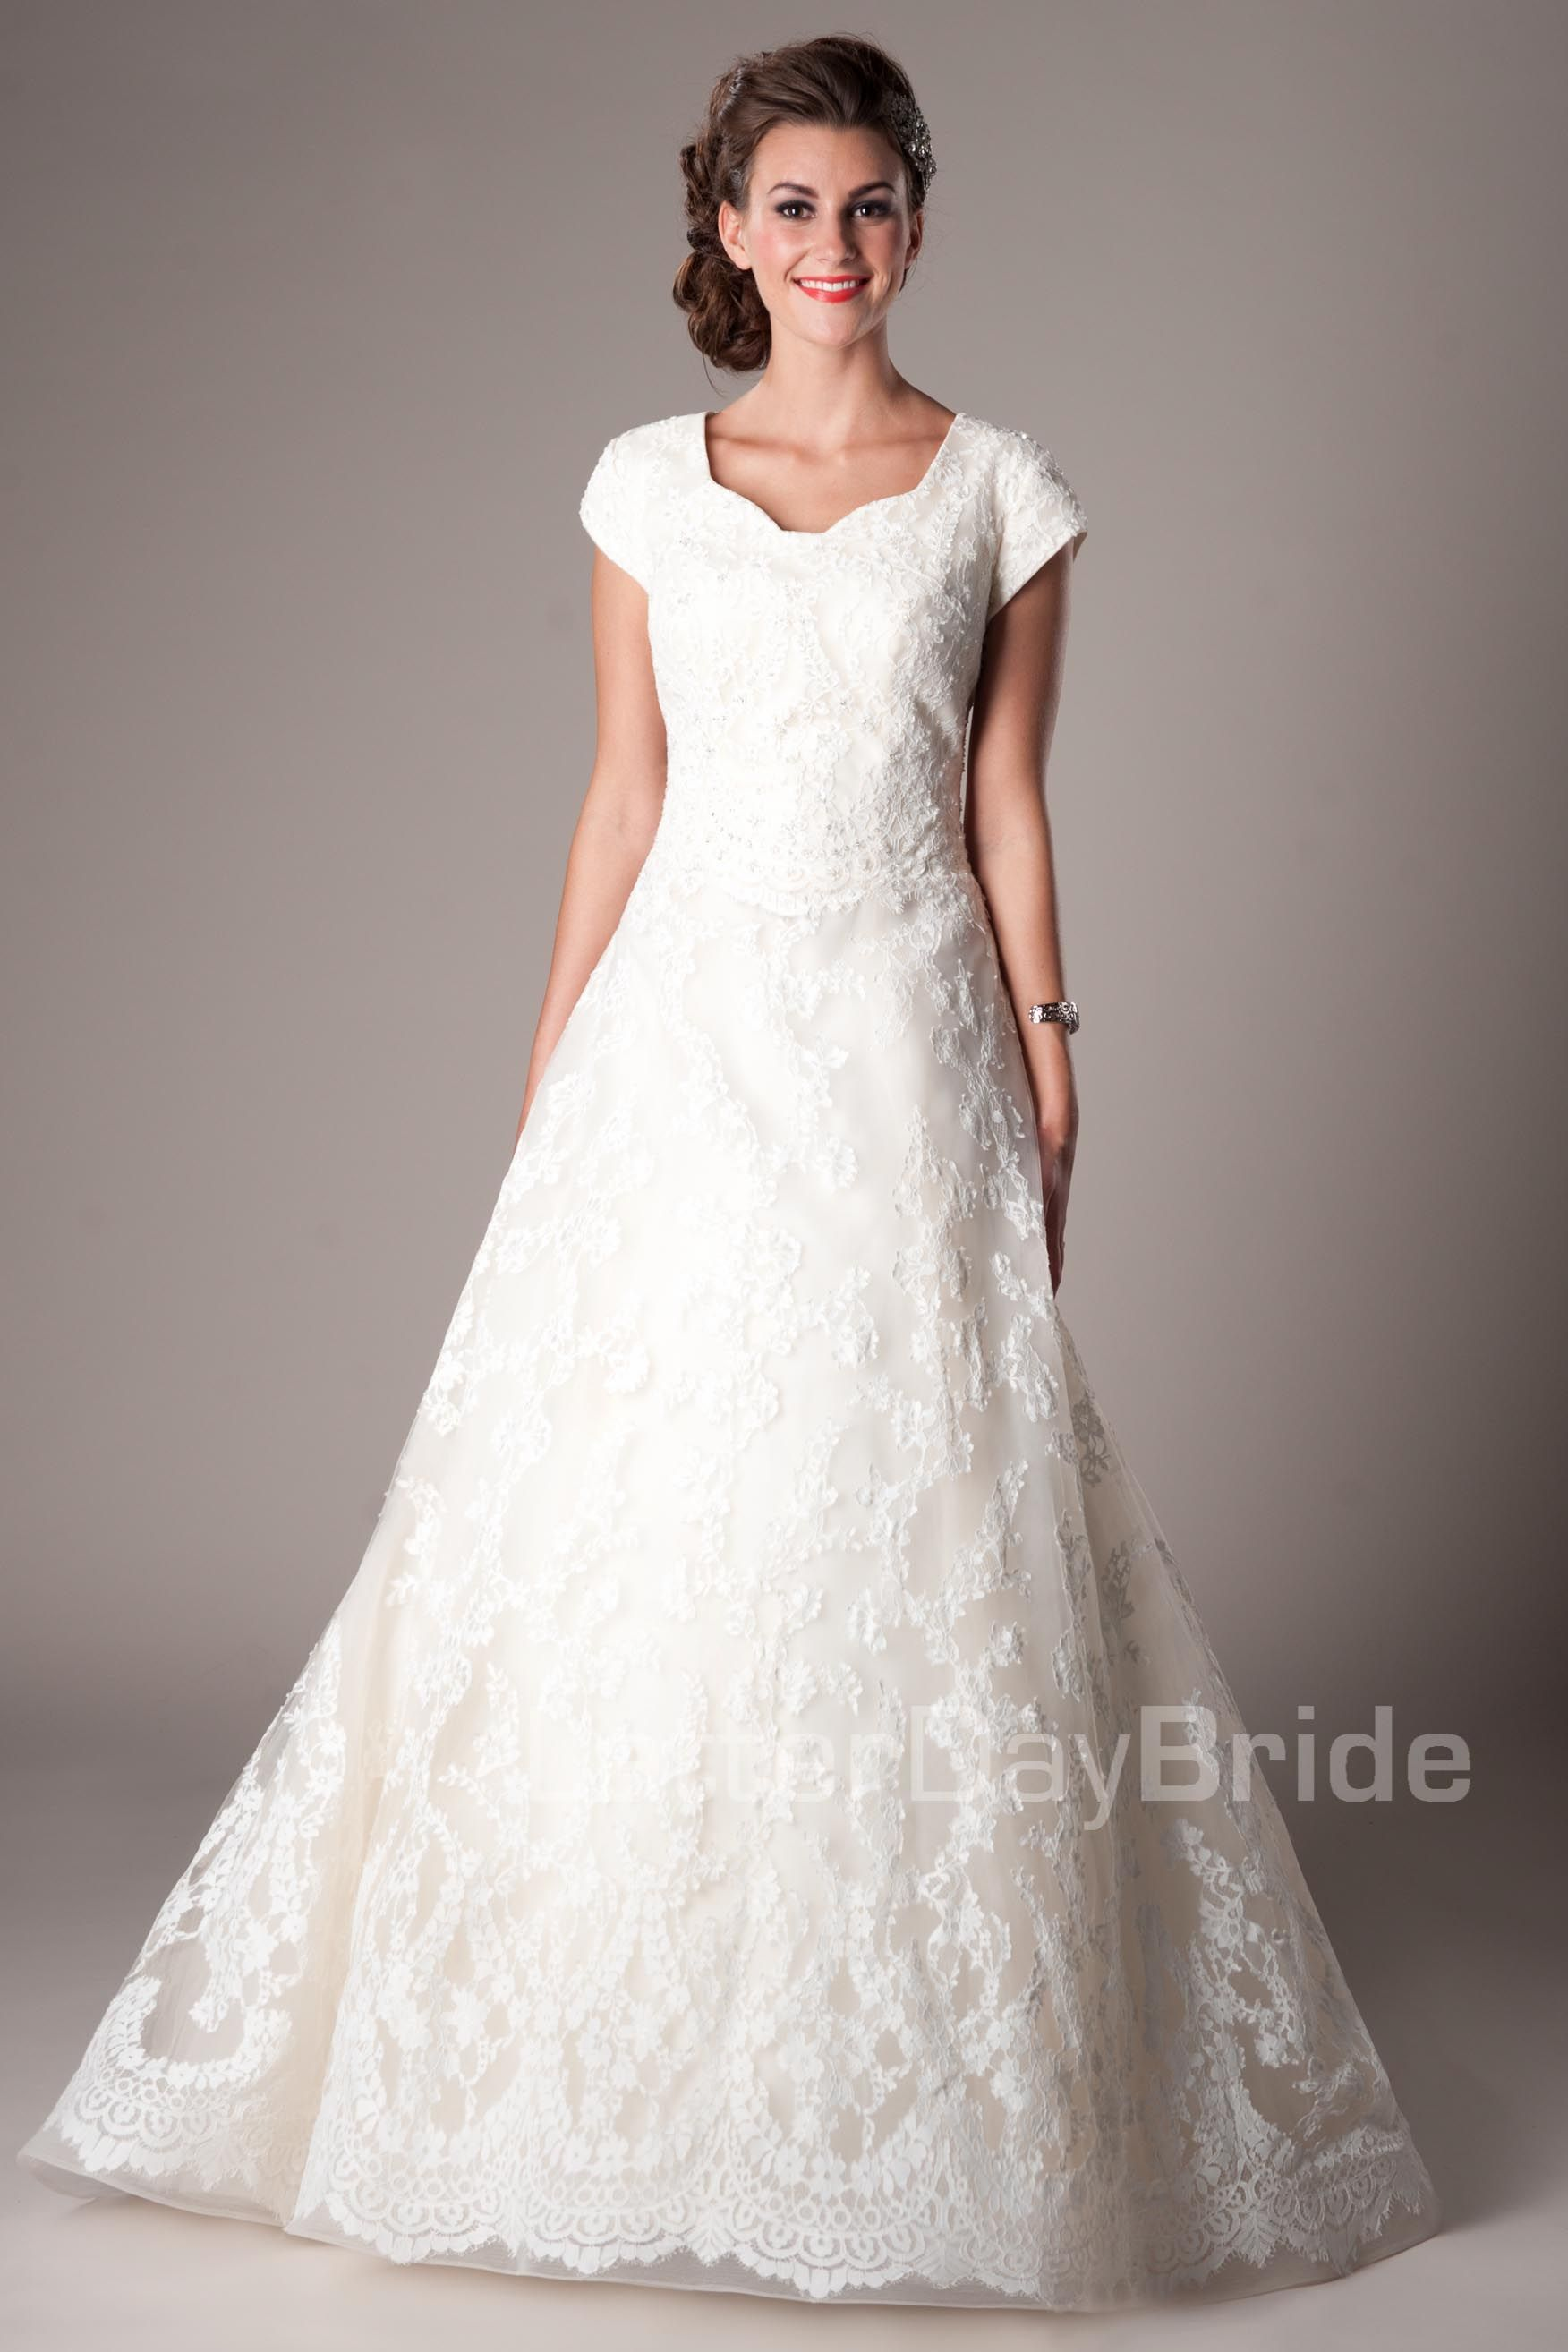 Seraphim modest wedding dress latter day bride prom for Lds wedding dresses lace